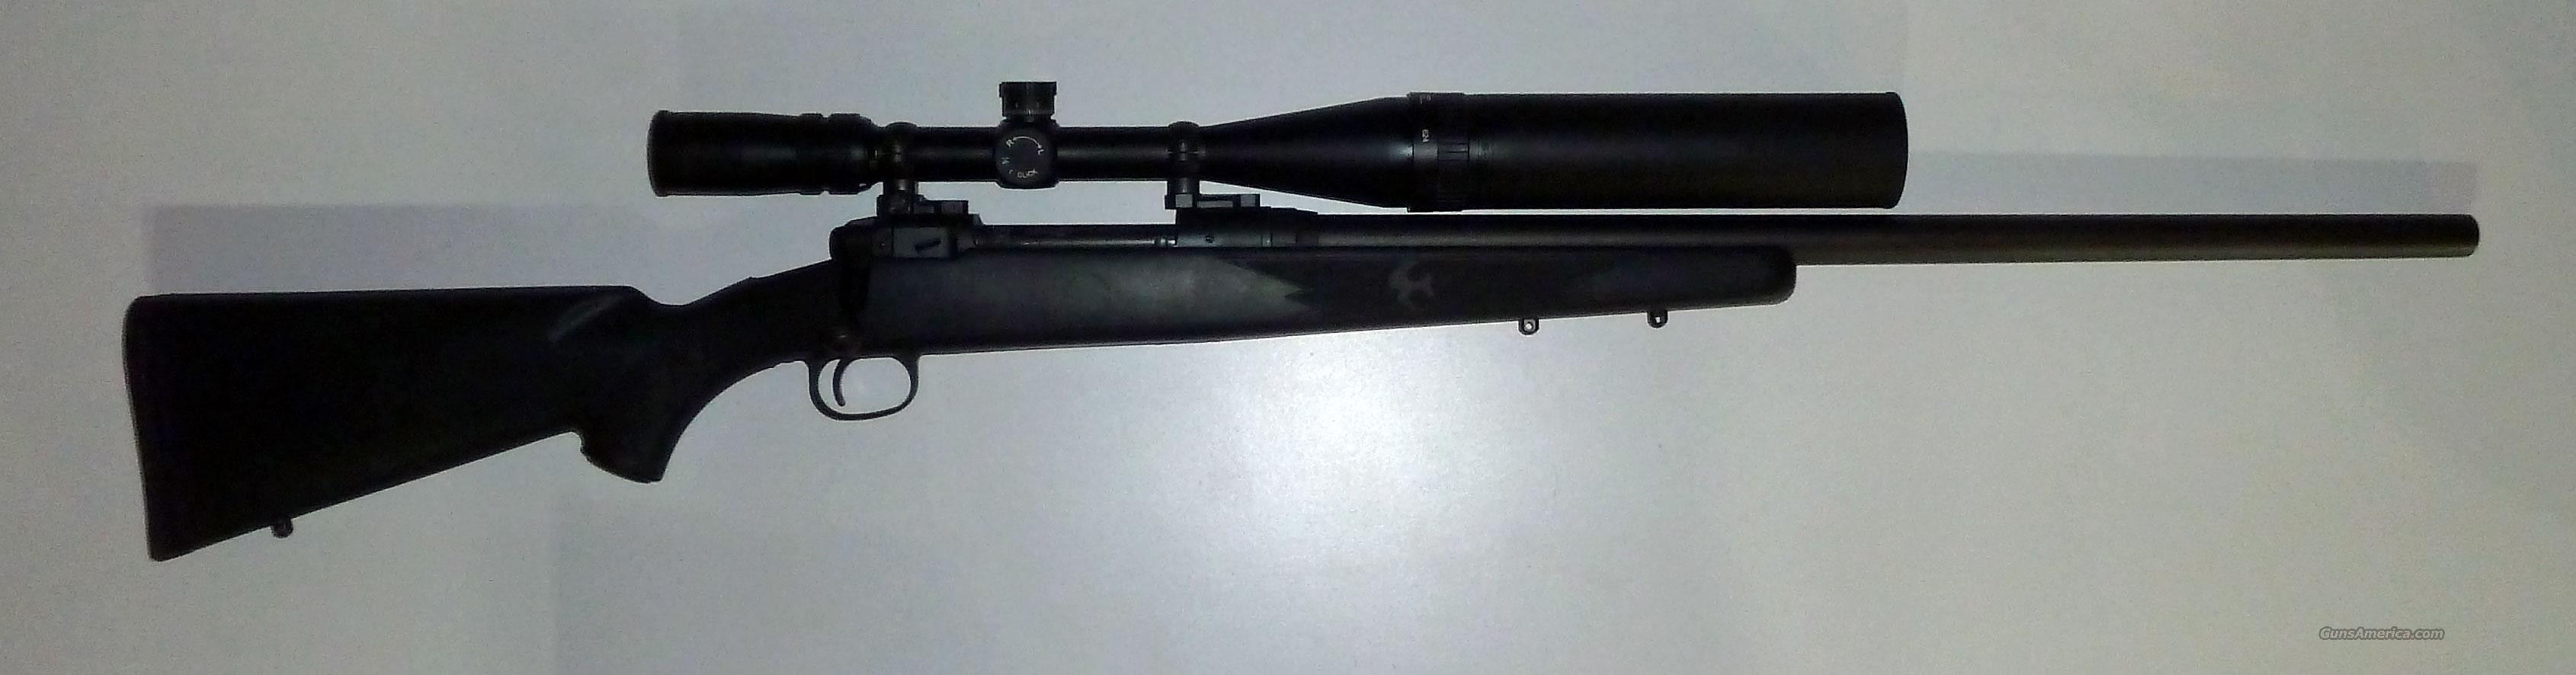 Savage 110 FP 7mm Rem. Mag. w/Scope  Guns > Rifles > Savage Rifles > Standard Bolt Action > Tactical